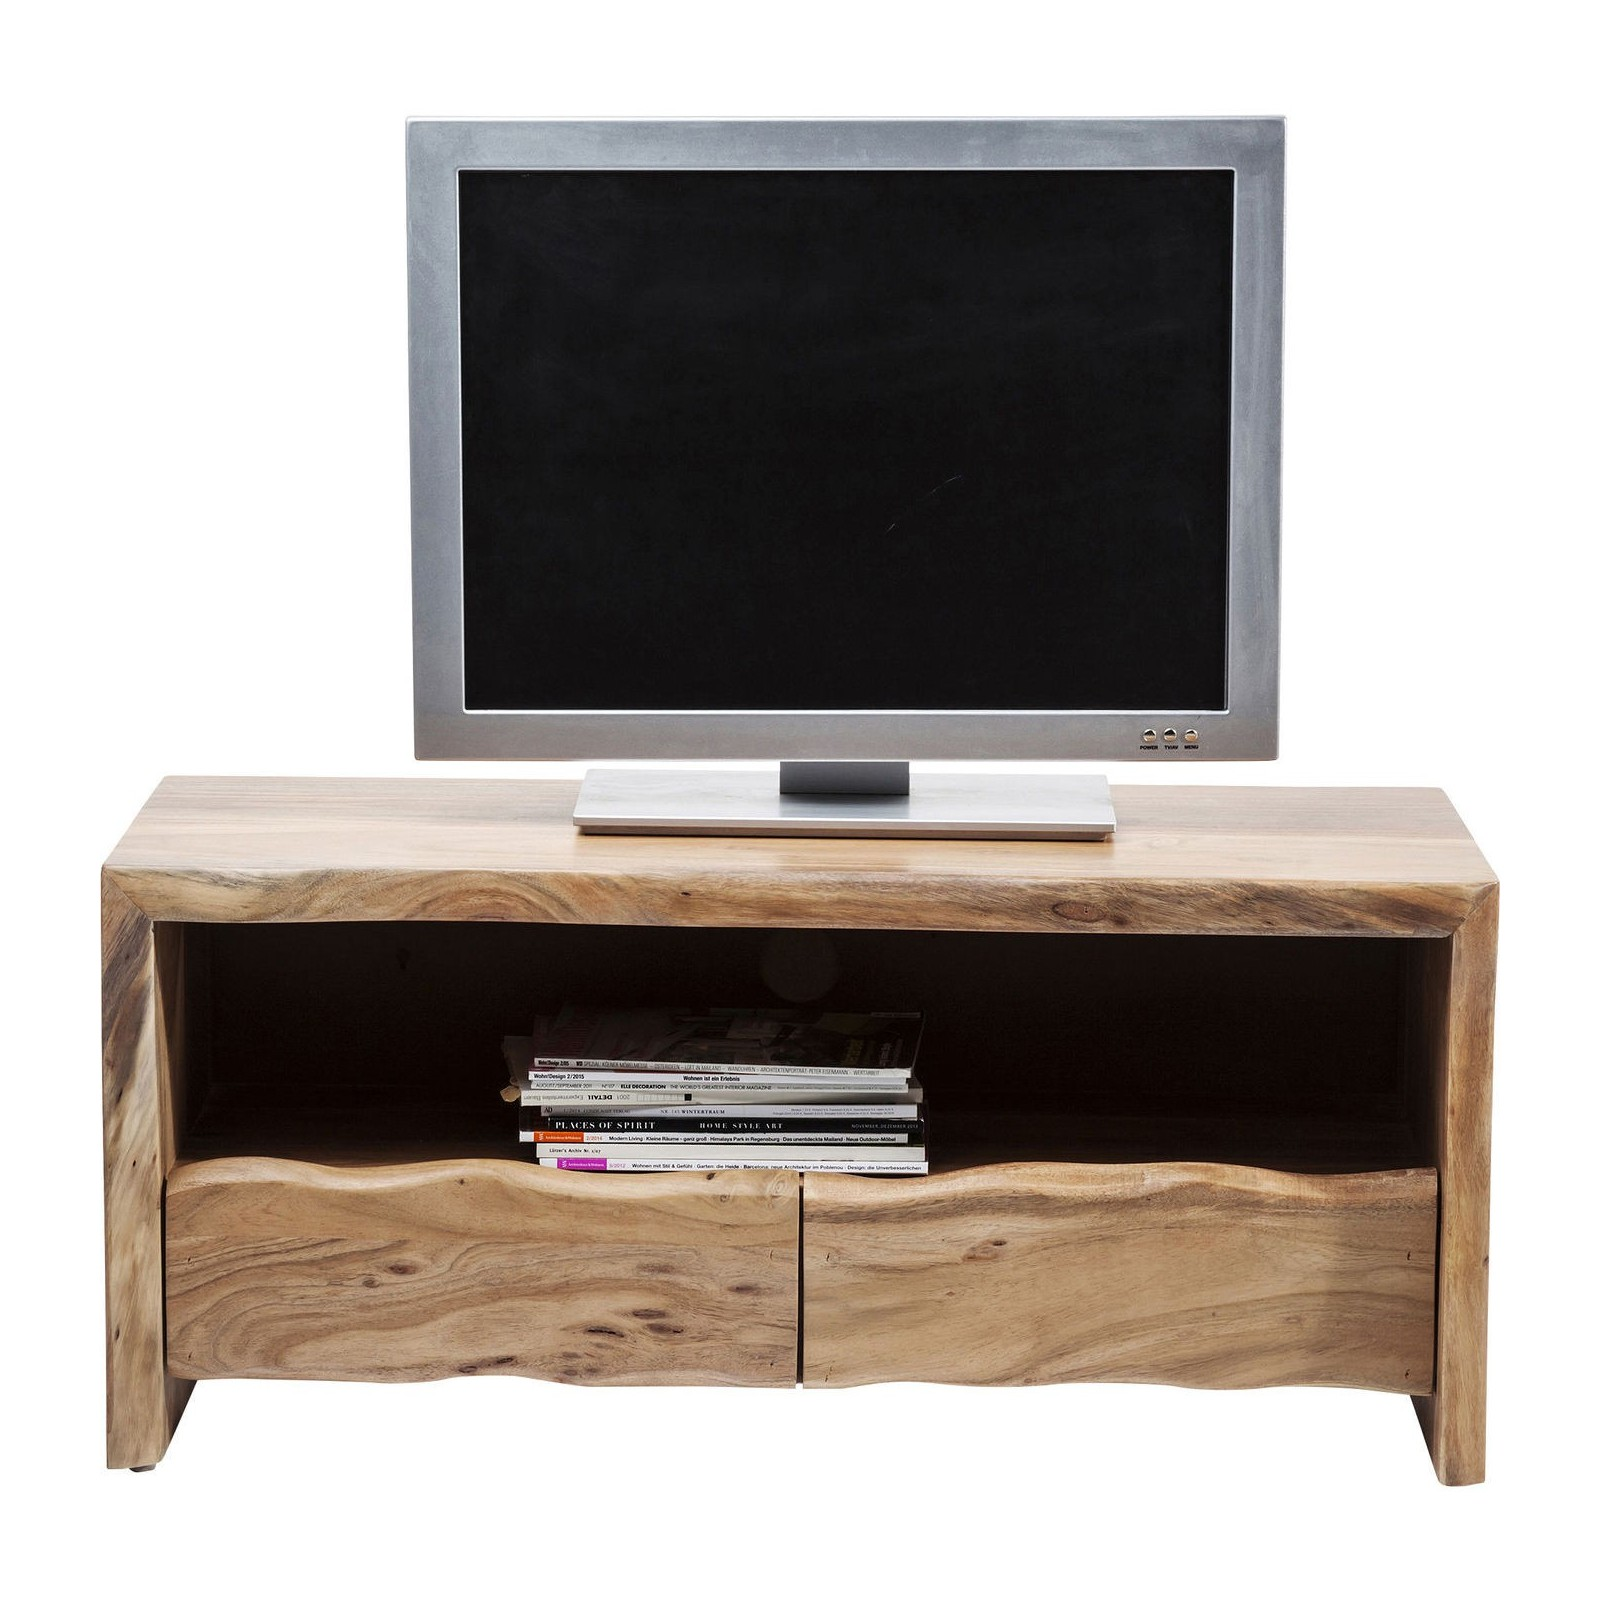 Meuble tv scandinave en bois pure nature kare design for Banc de television